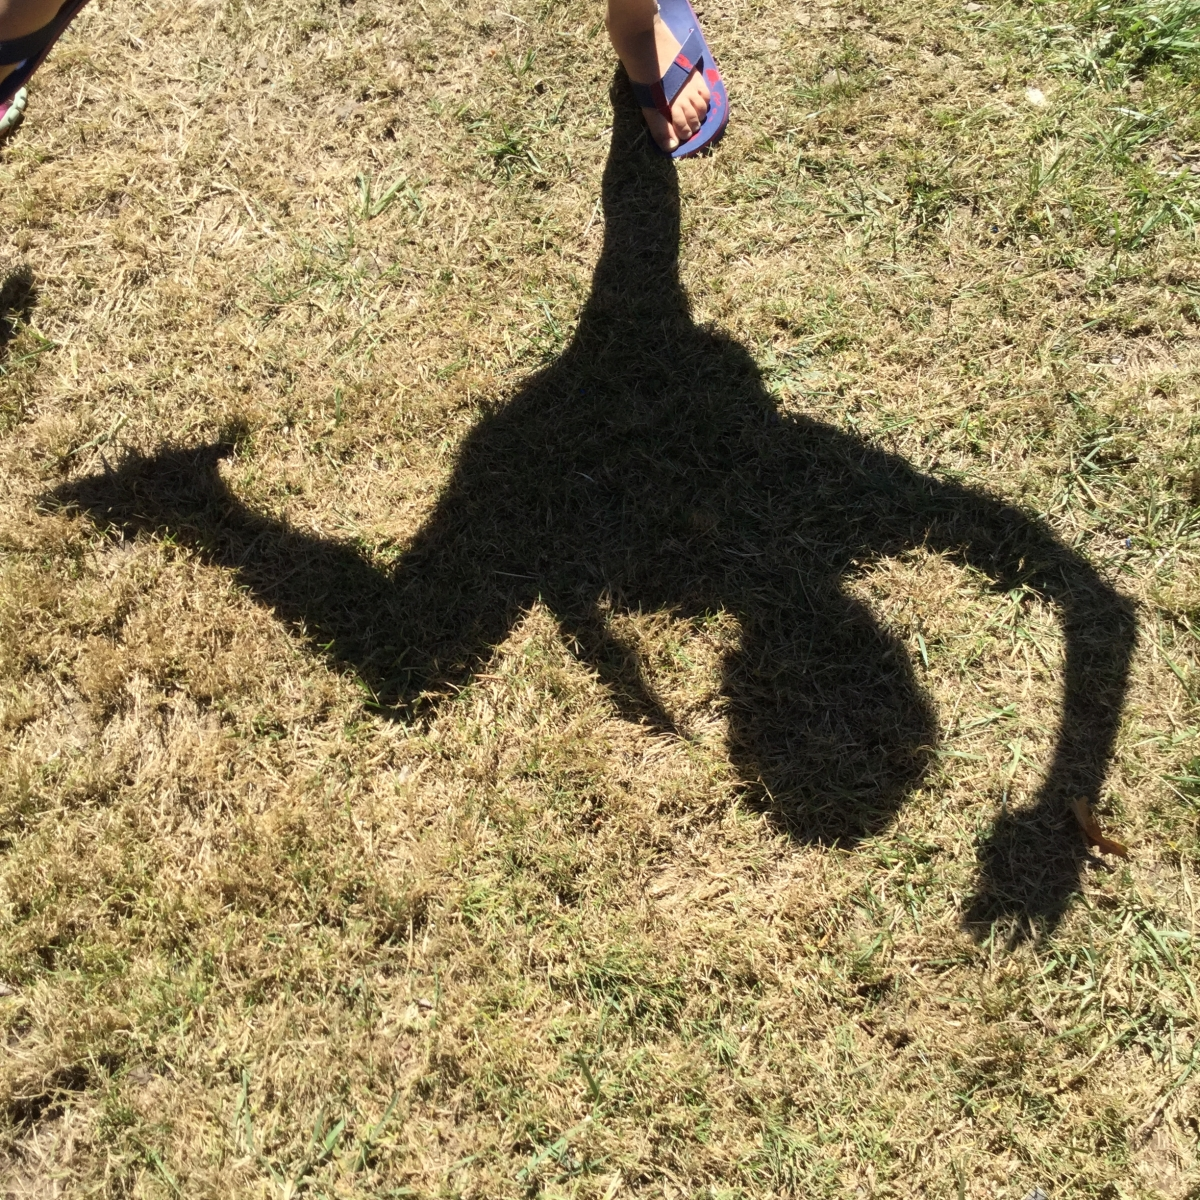 Shadow on the grass of a child who seems to be dancing